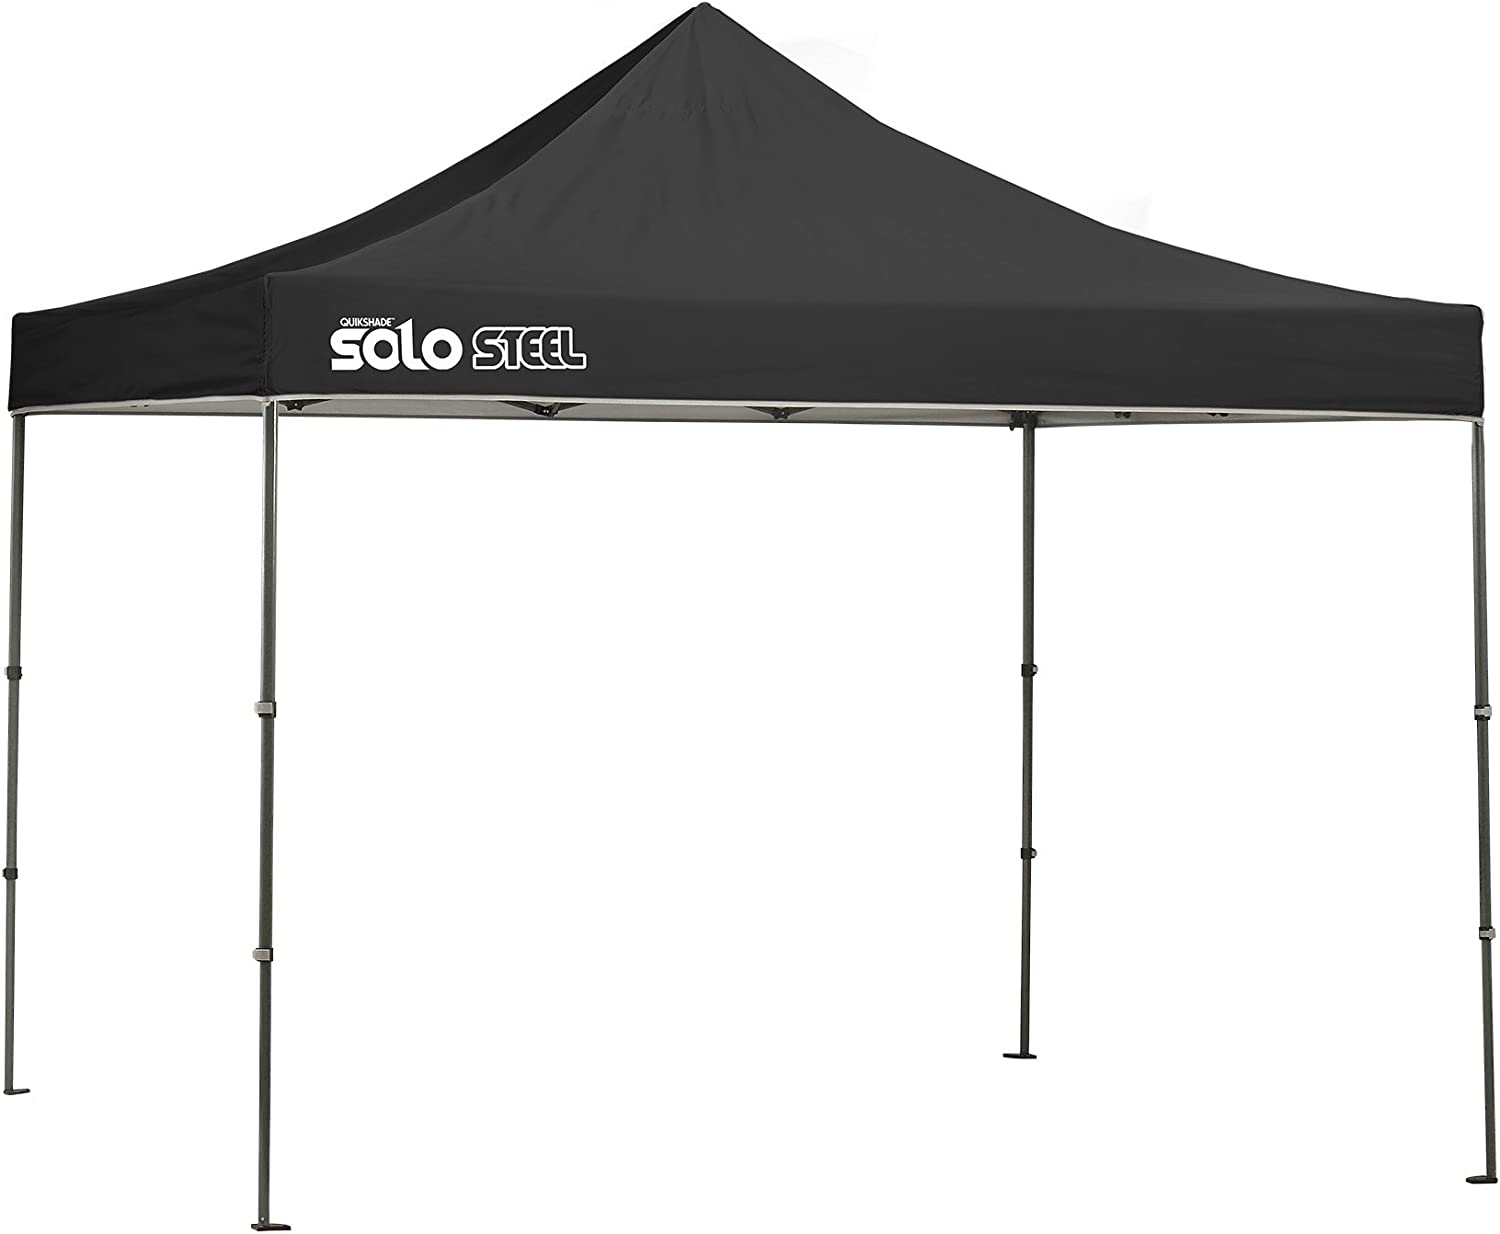 Quik Shade Solo Steel 100 10 Canopy Straight x OFFicial Leg online shop ft.